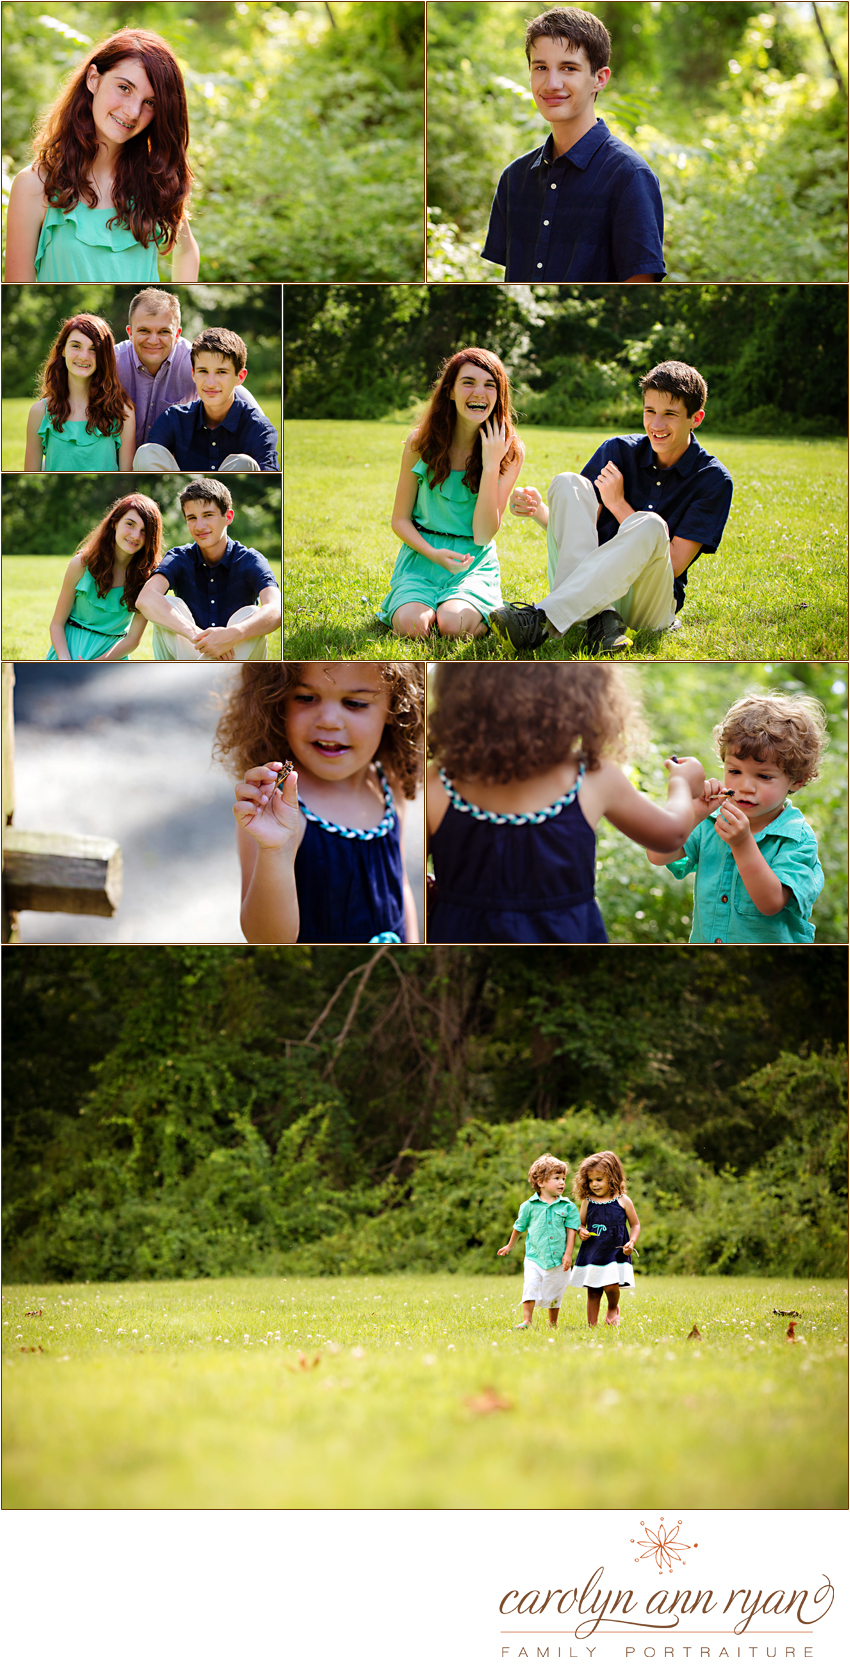 Summer Portraits in Marvin, NC with North Carolina Family and Child Photographer Carolyn Ann Ryan.